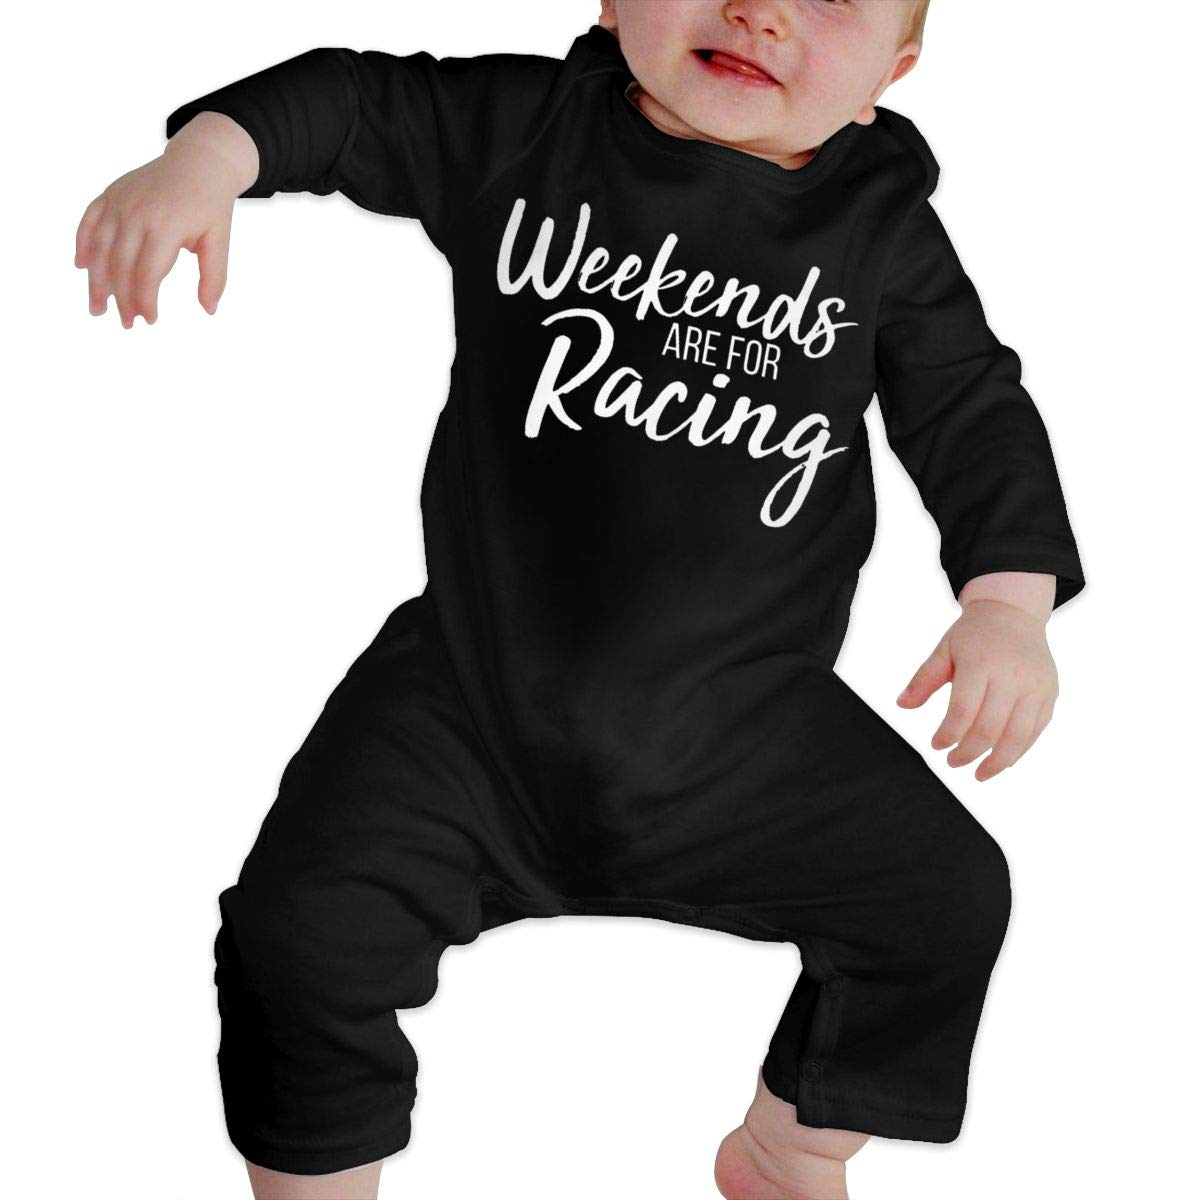 Weekends are for Racing Newborn Baby Boy Girl Romper Jumpsuit Long Sleeve Bodysuit Overalls Outfits Clothes